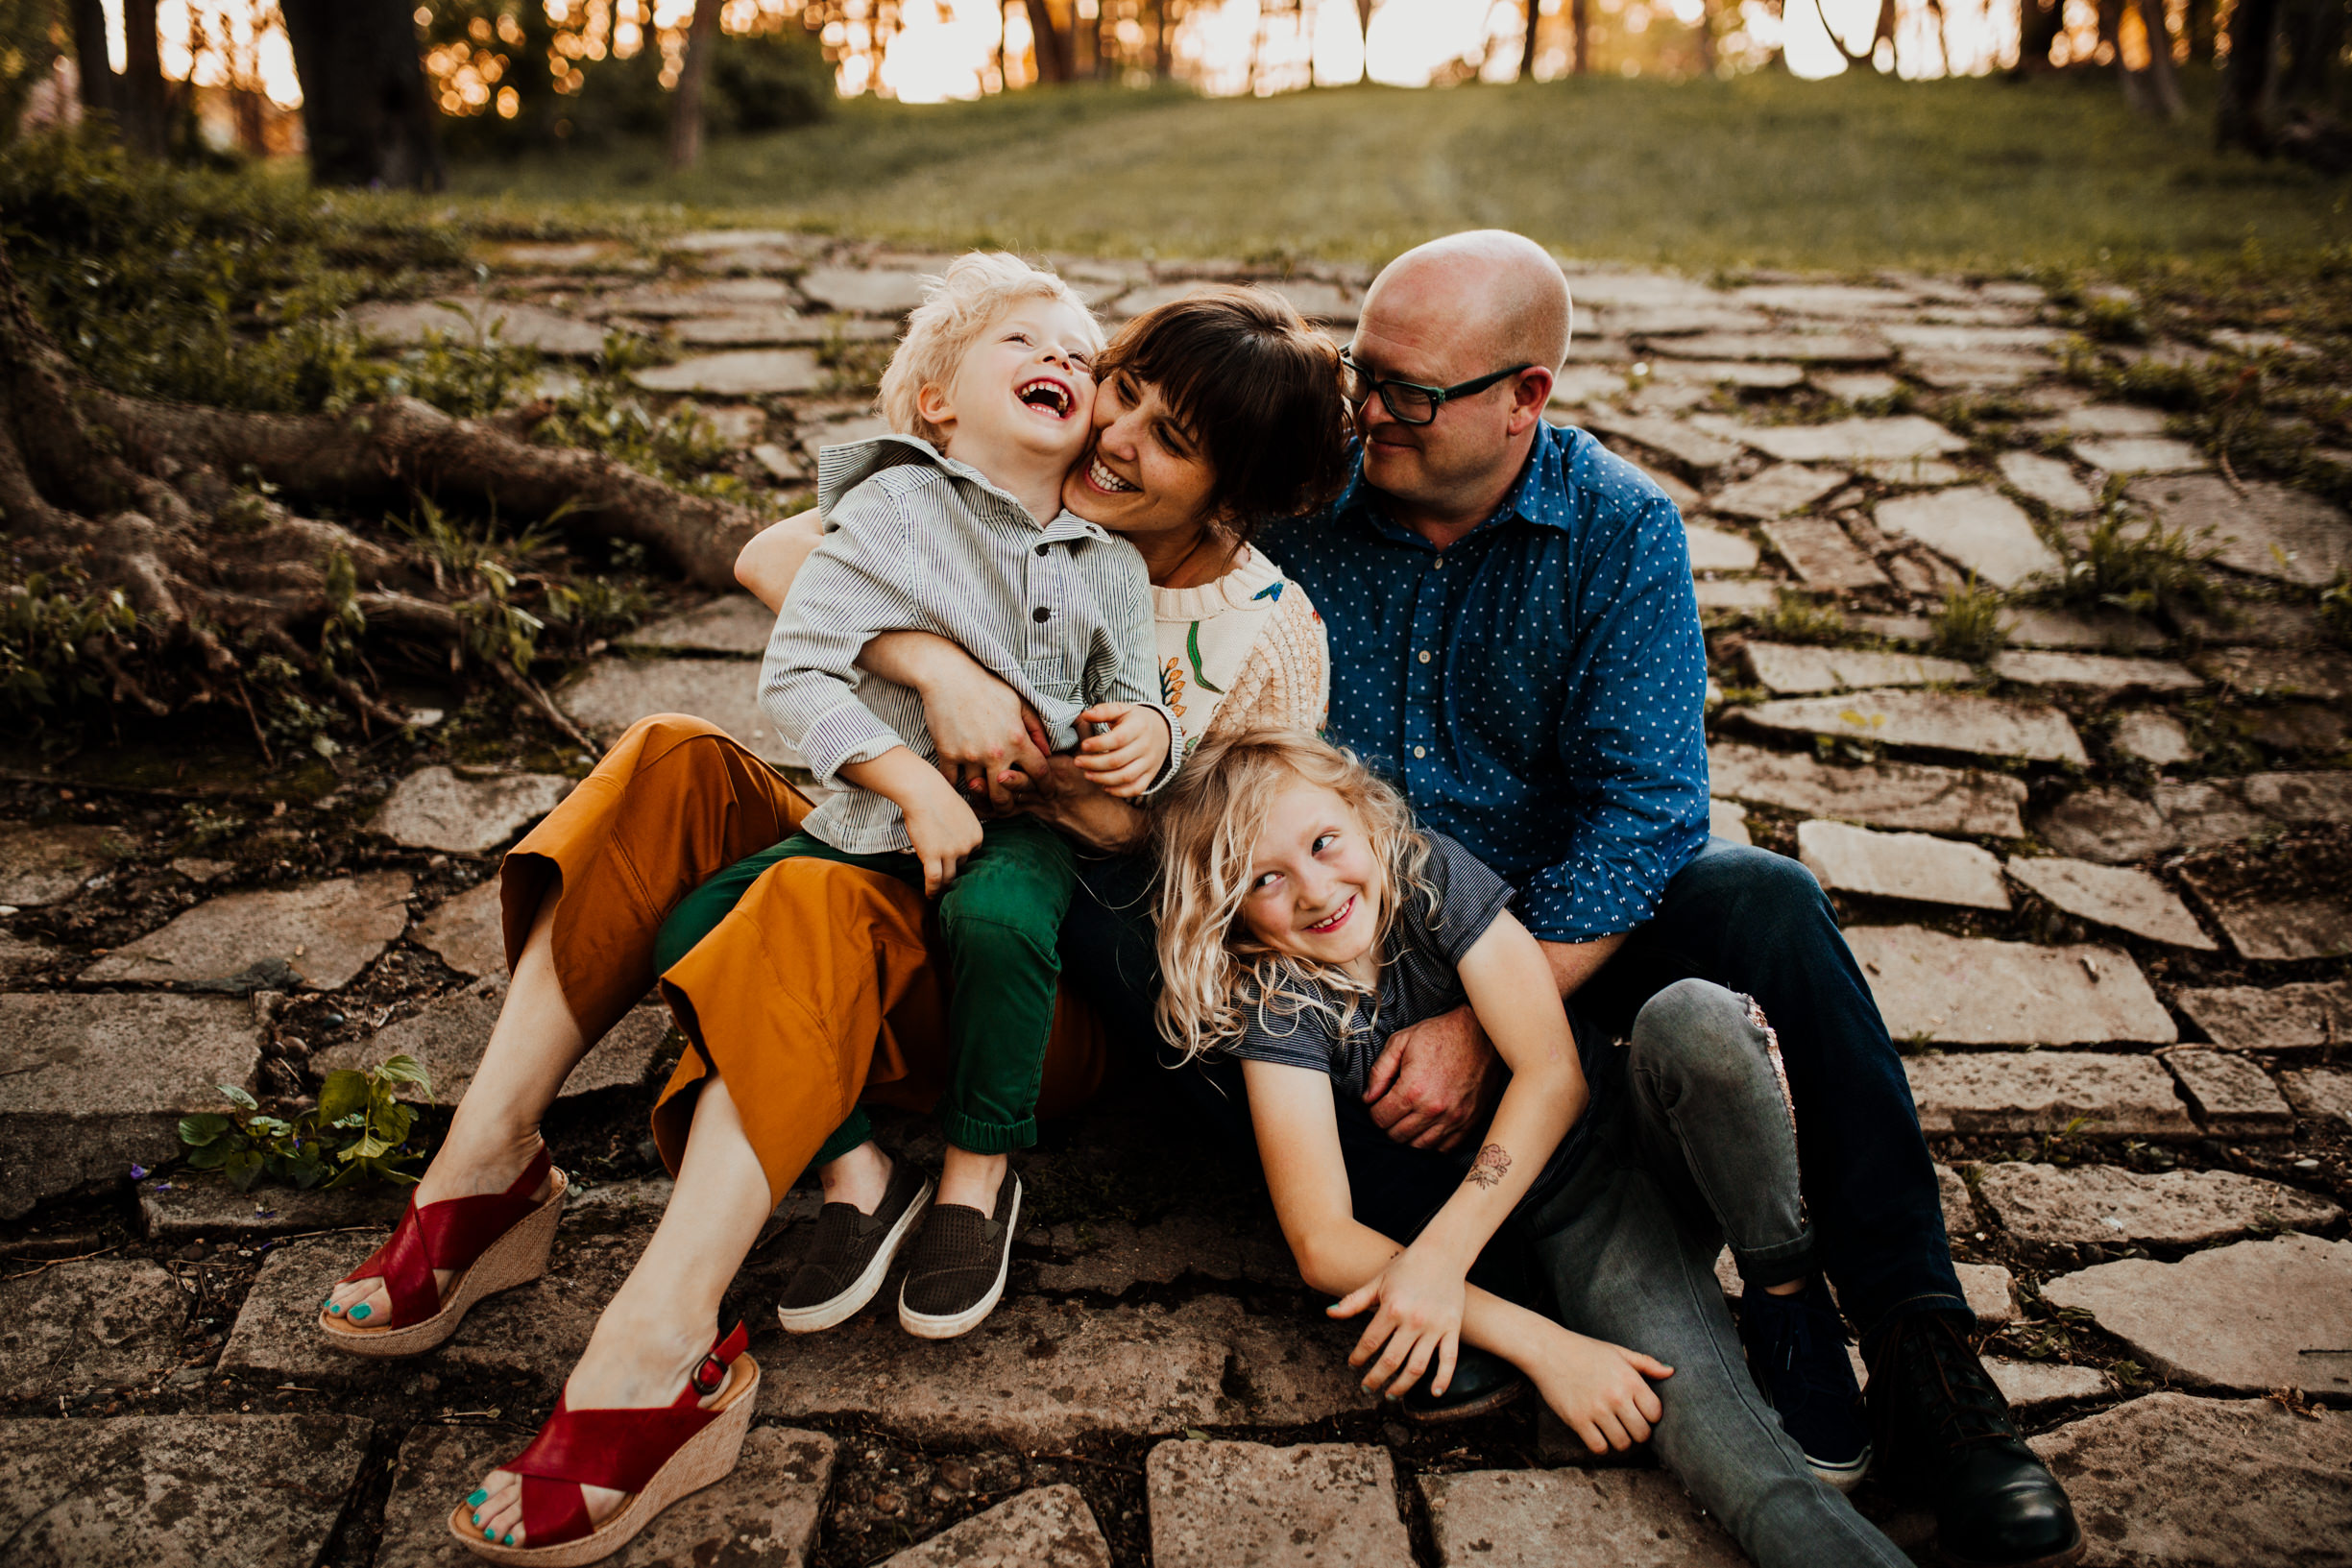 louisville-family-photographer-crystal-ludwick-photo (3 of 46).jpg